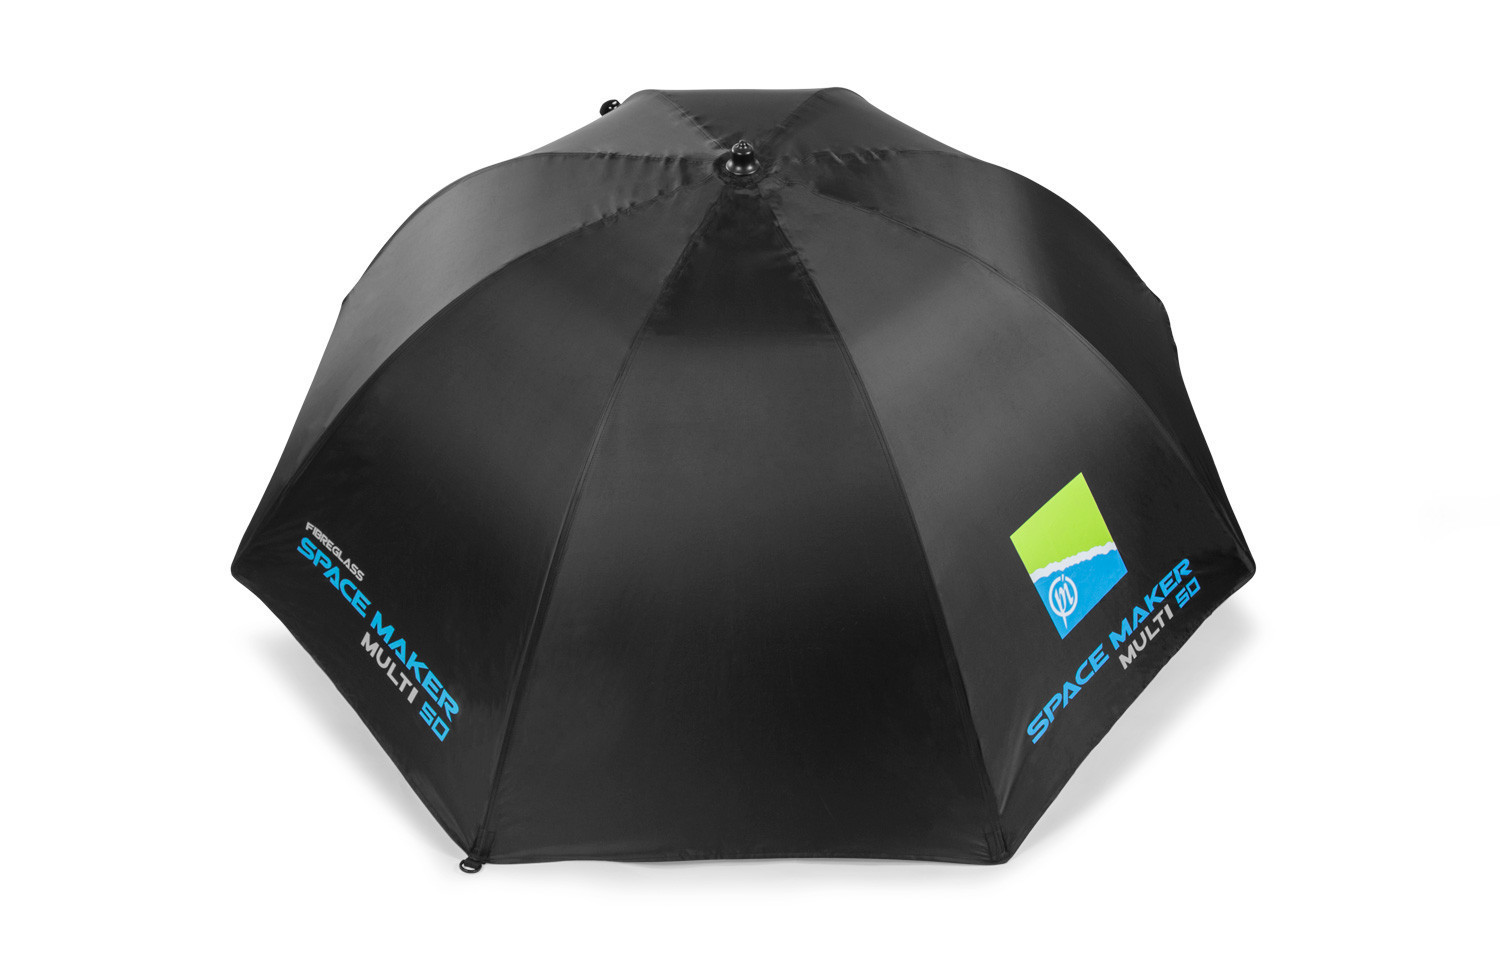 Preston Space Maker Multi 50' Brolly - Schirm